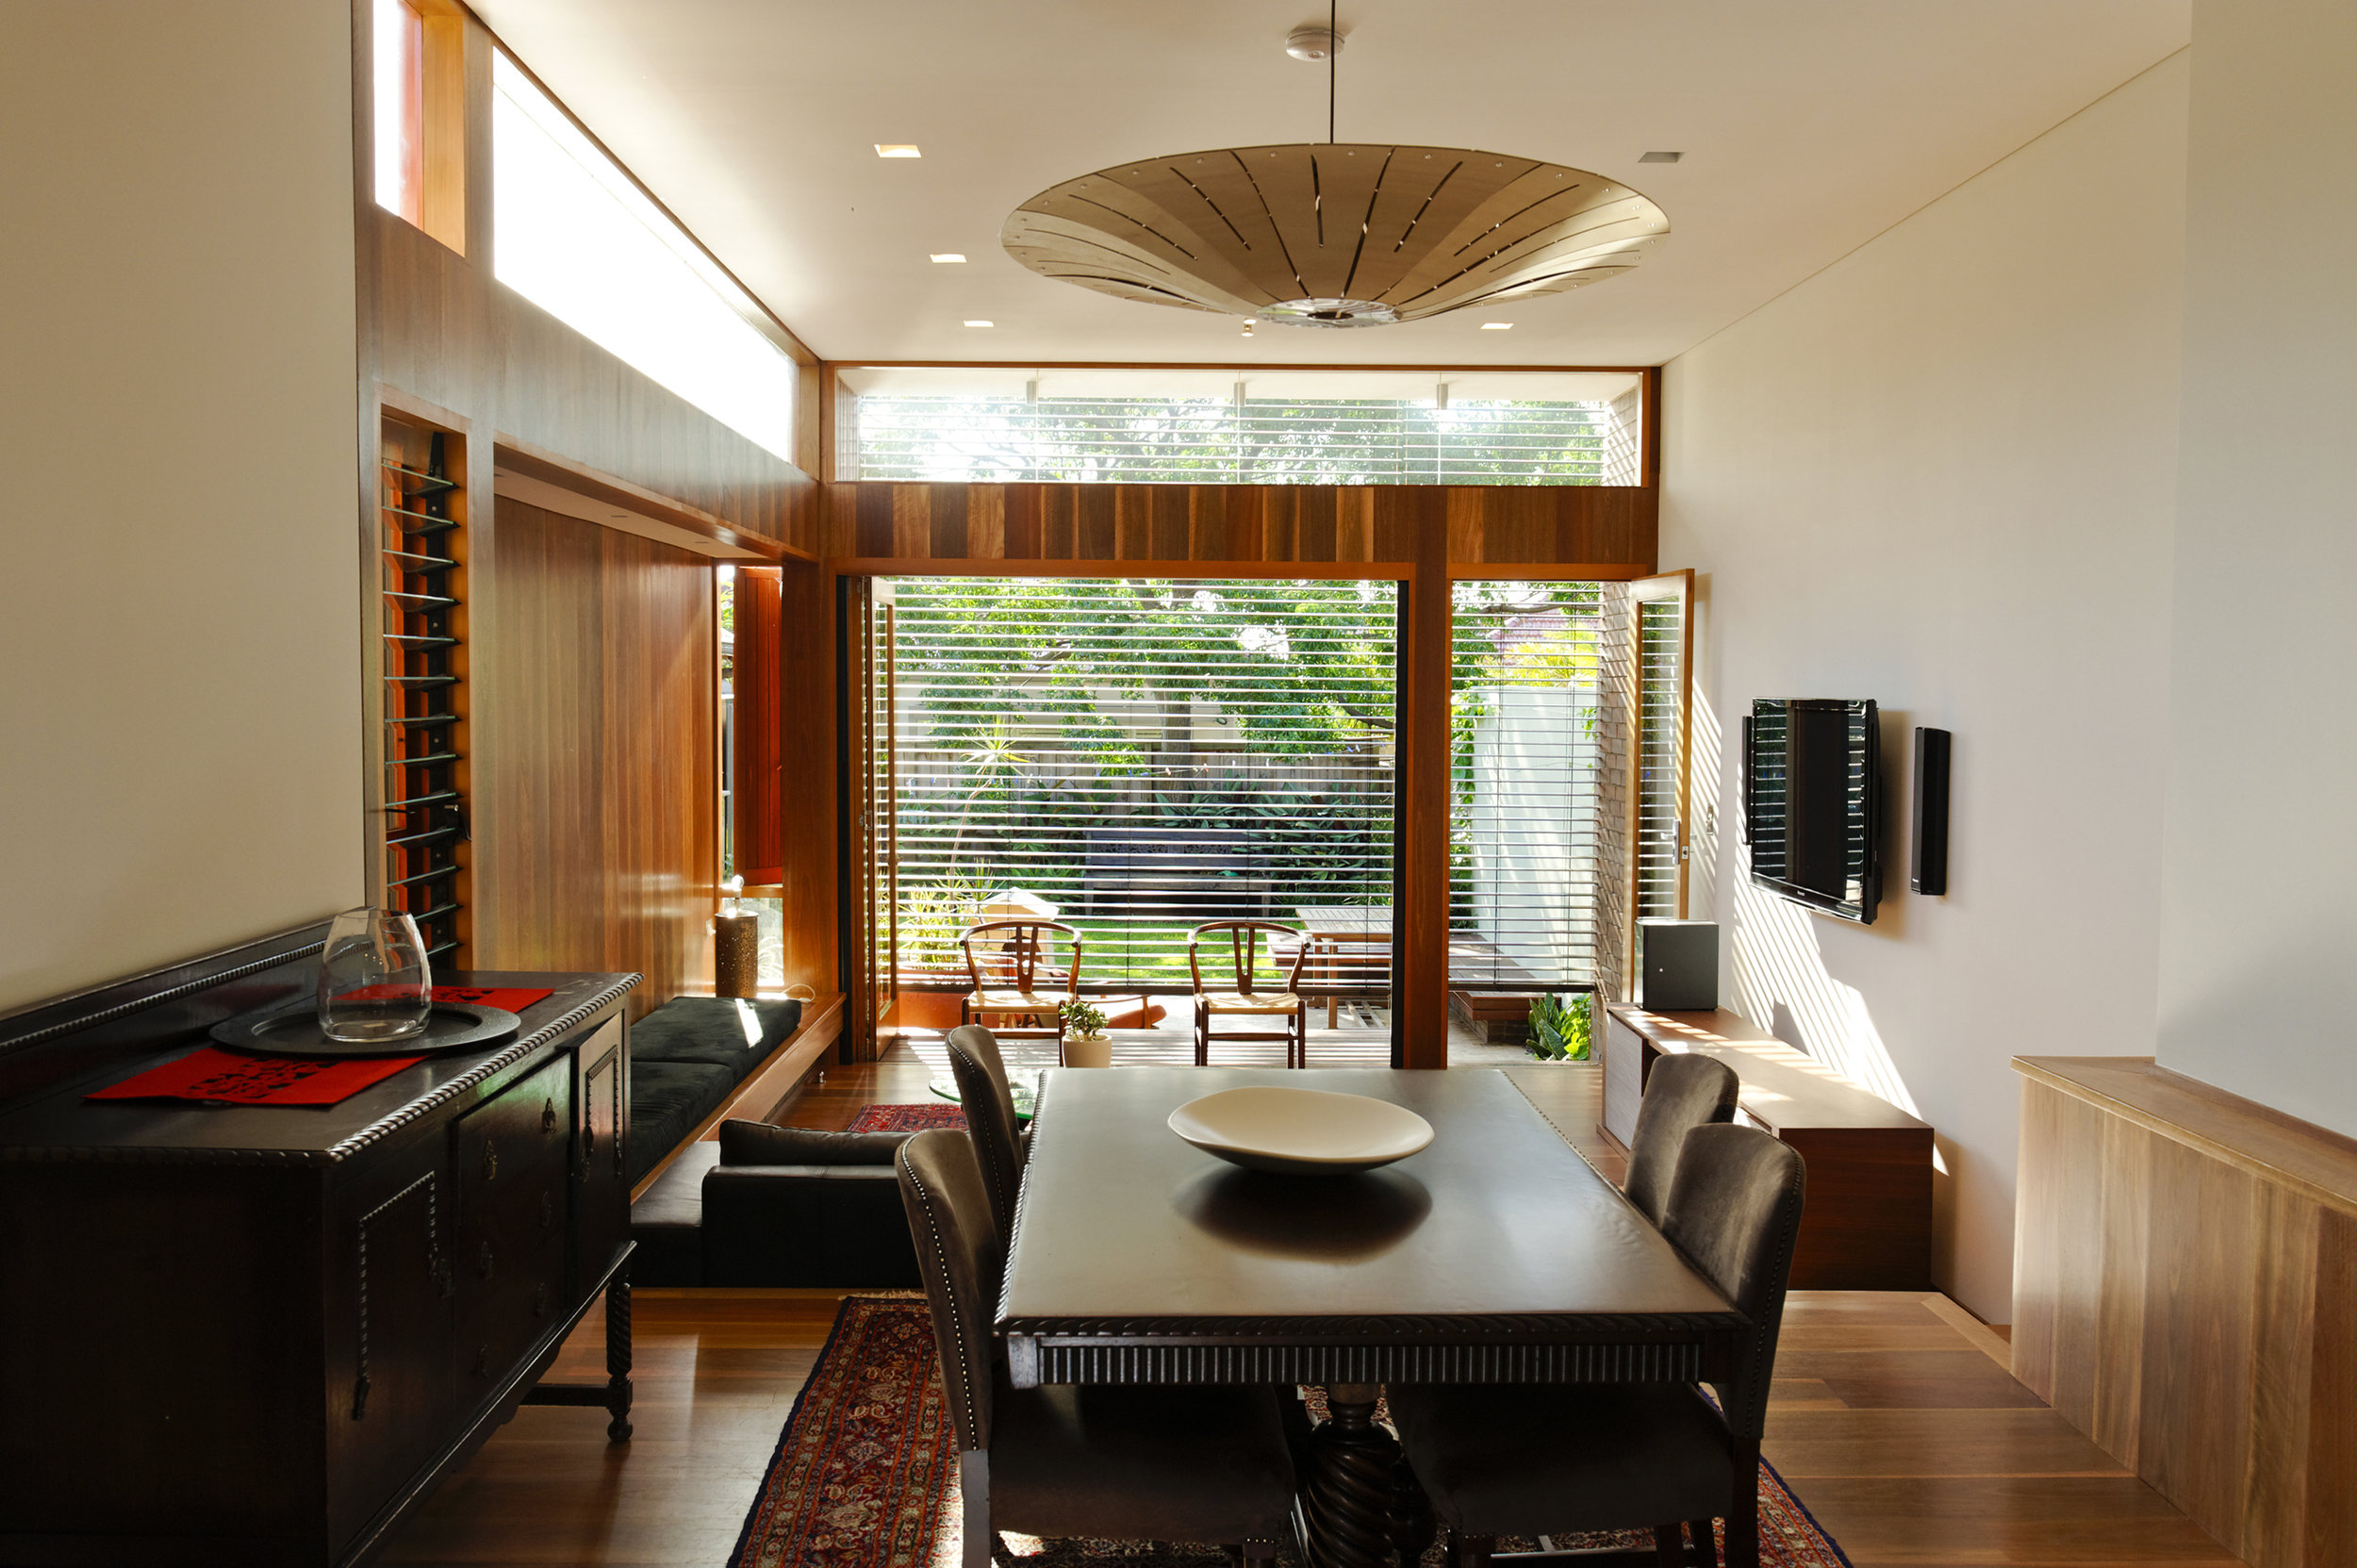 2011027154-08-KensingtonHouse-JohnSlaytor.jpg